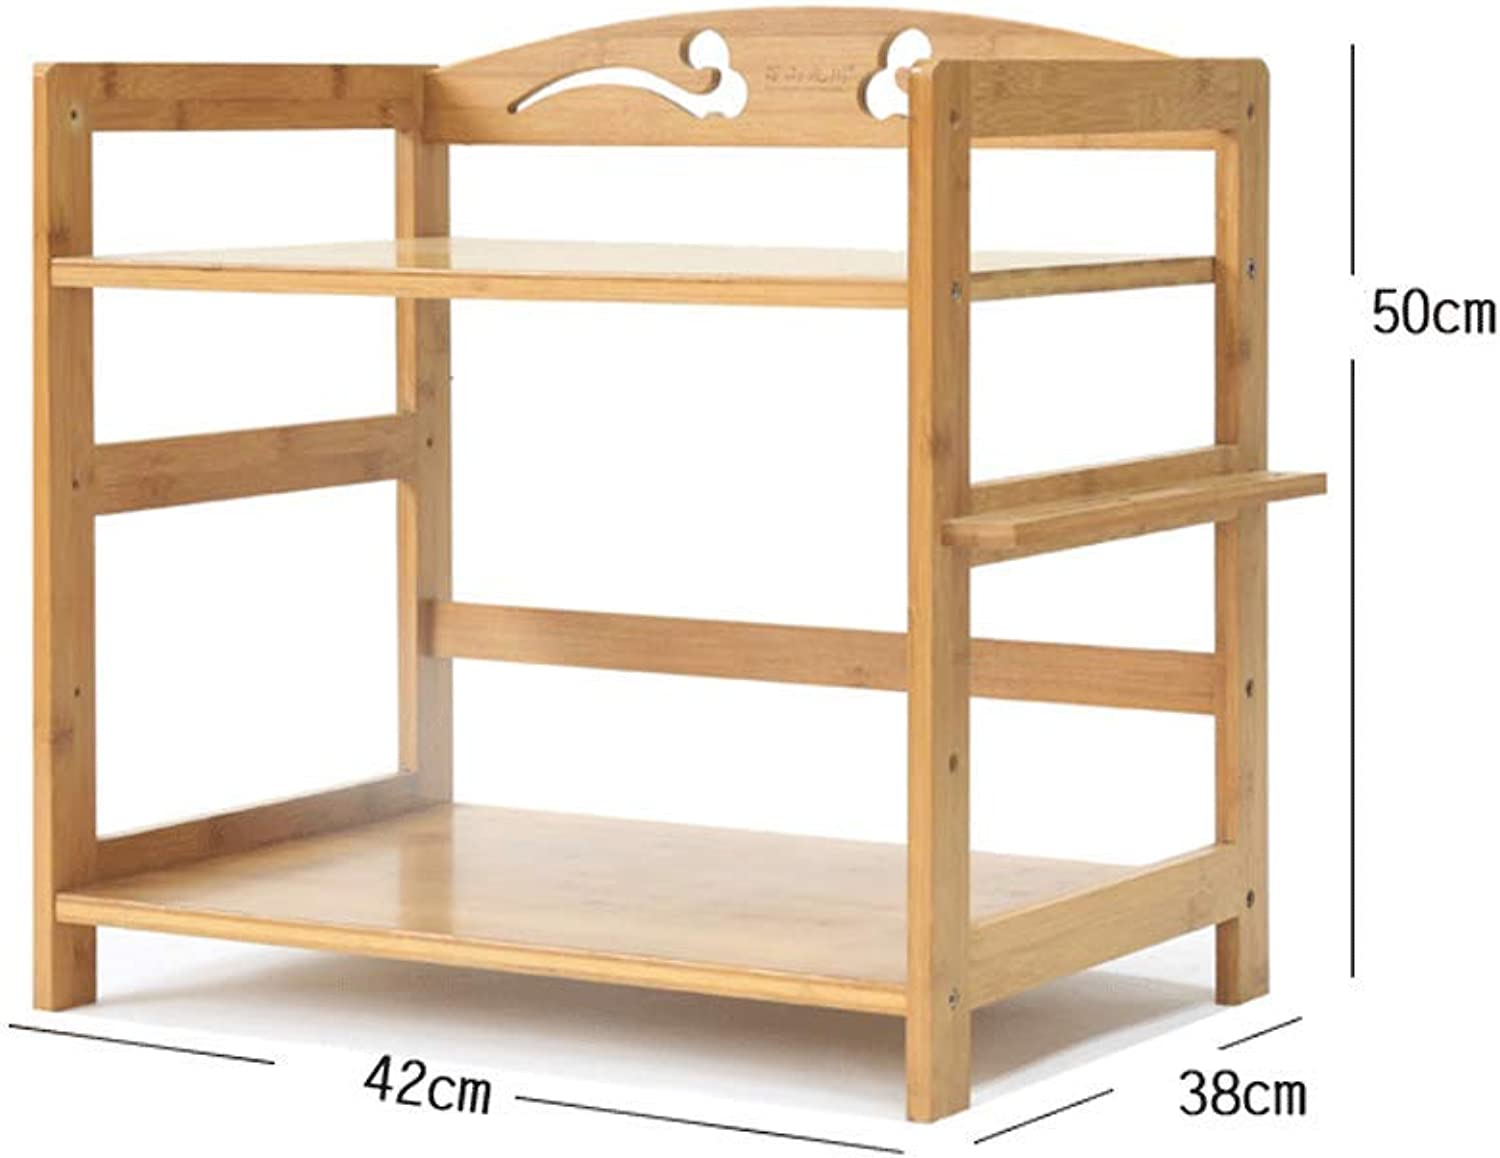 CCF Shelf Microwave Oven Shelf Kitchen Floor Stand Bamboo Wood Shelf Storage Shelf CCFSF (Size   42  35  50CM (Double Layer))